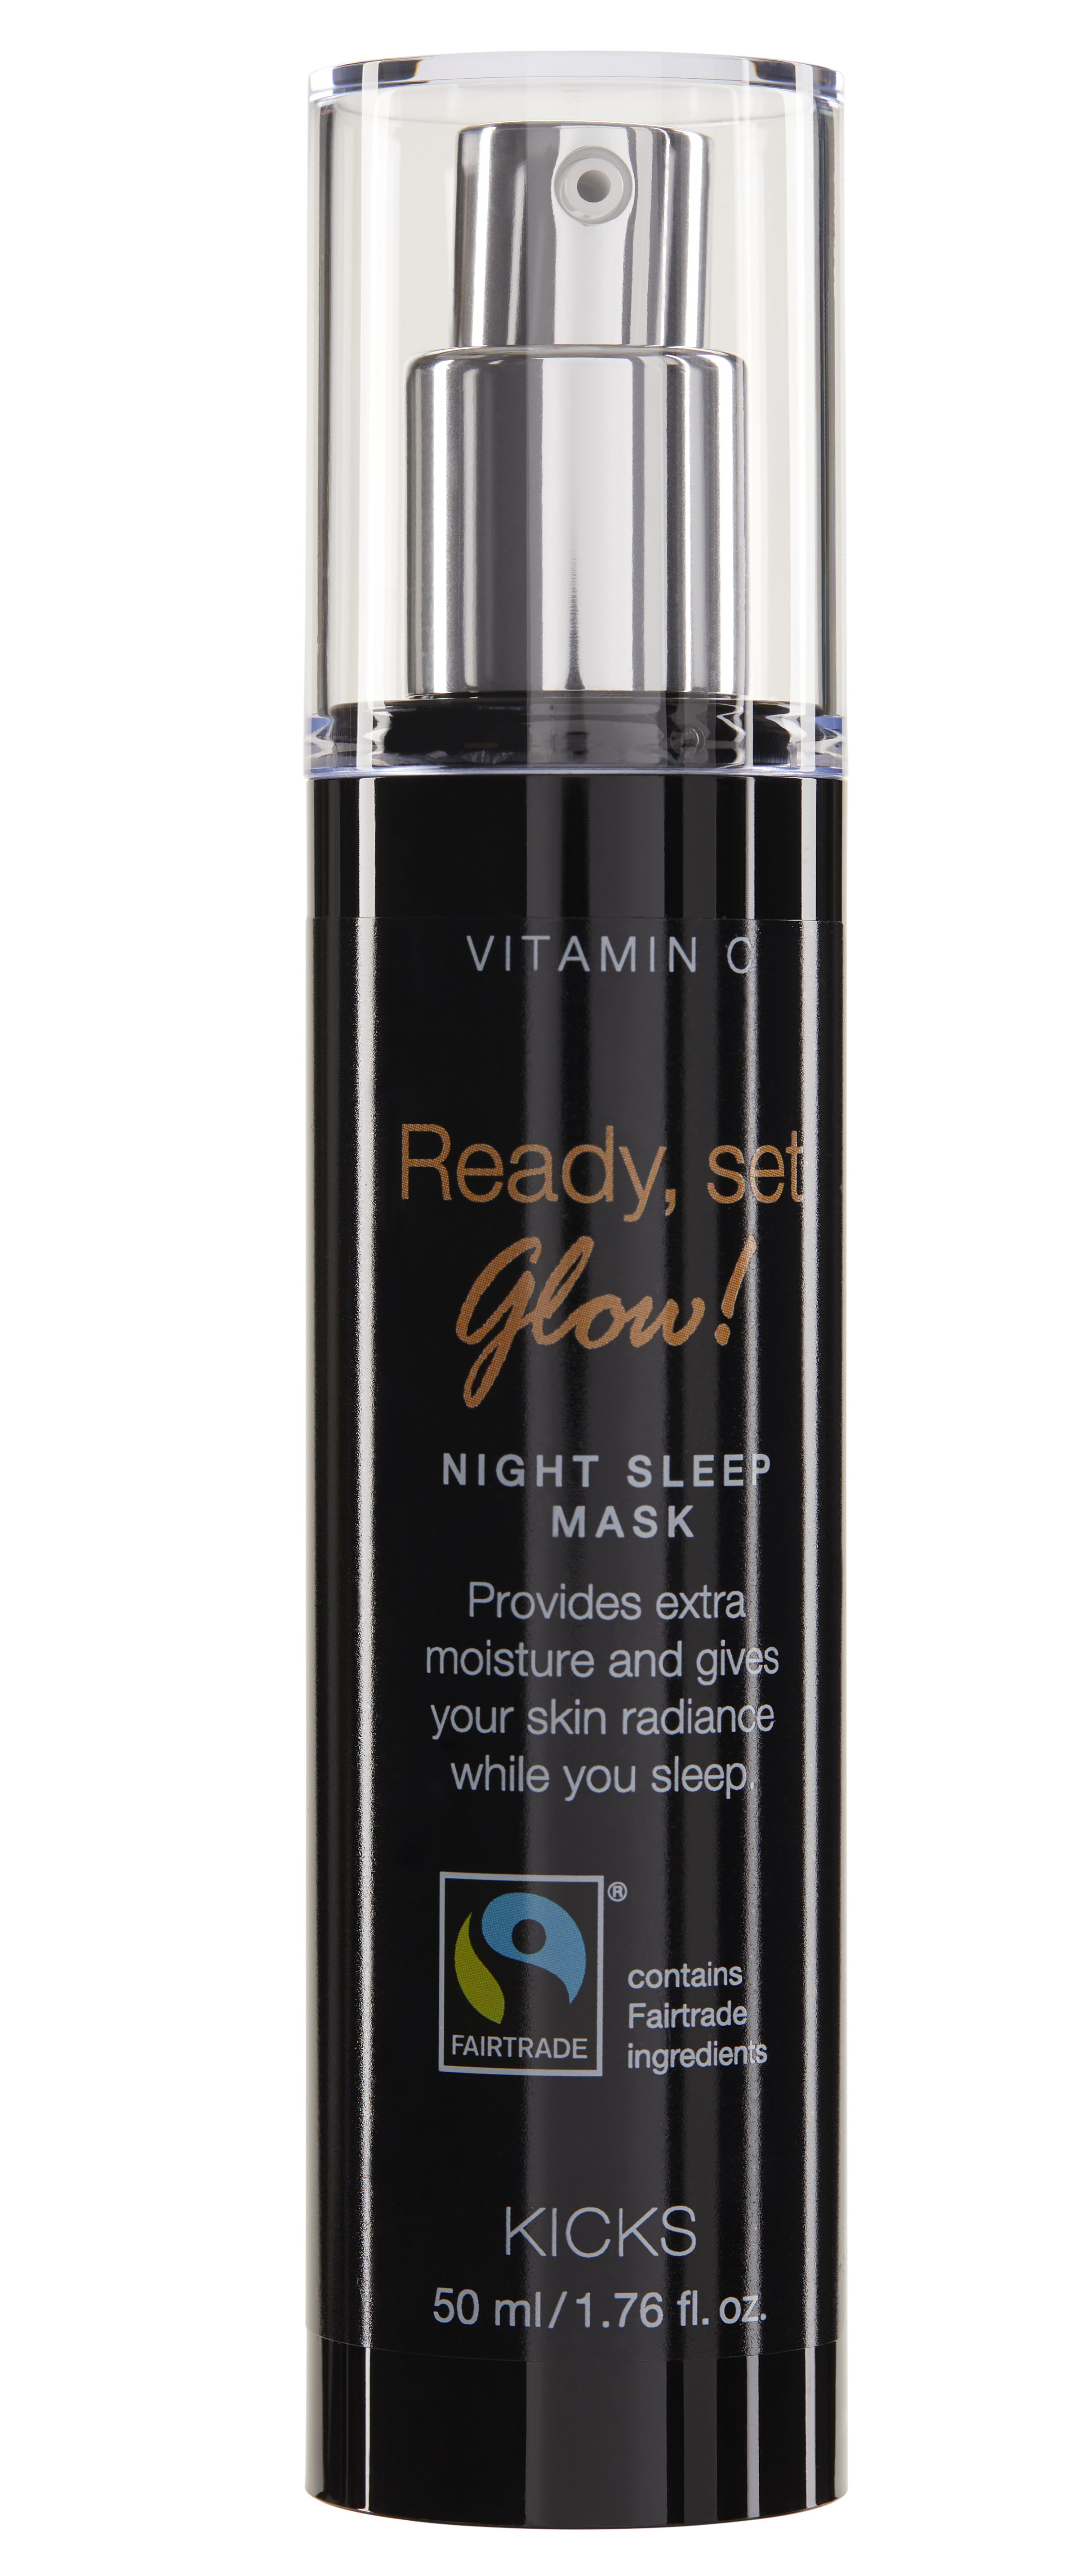 Vitamin C Night Sleep Mask